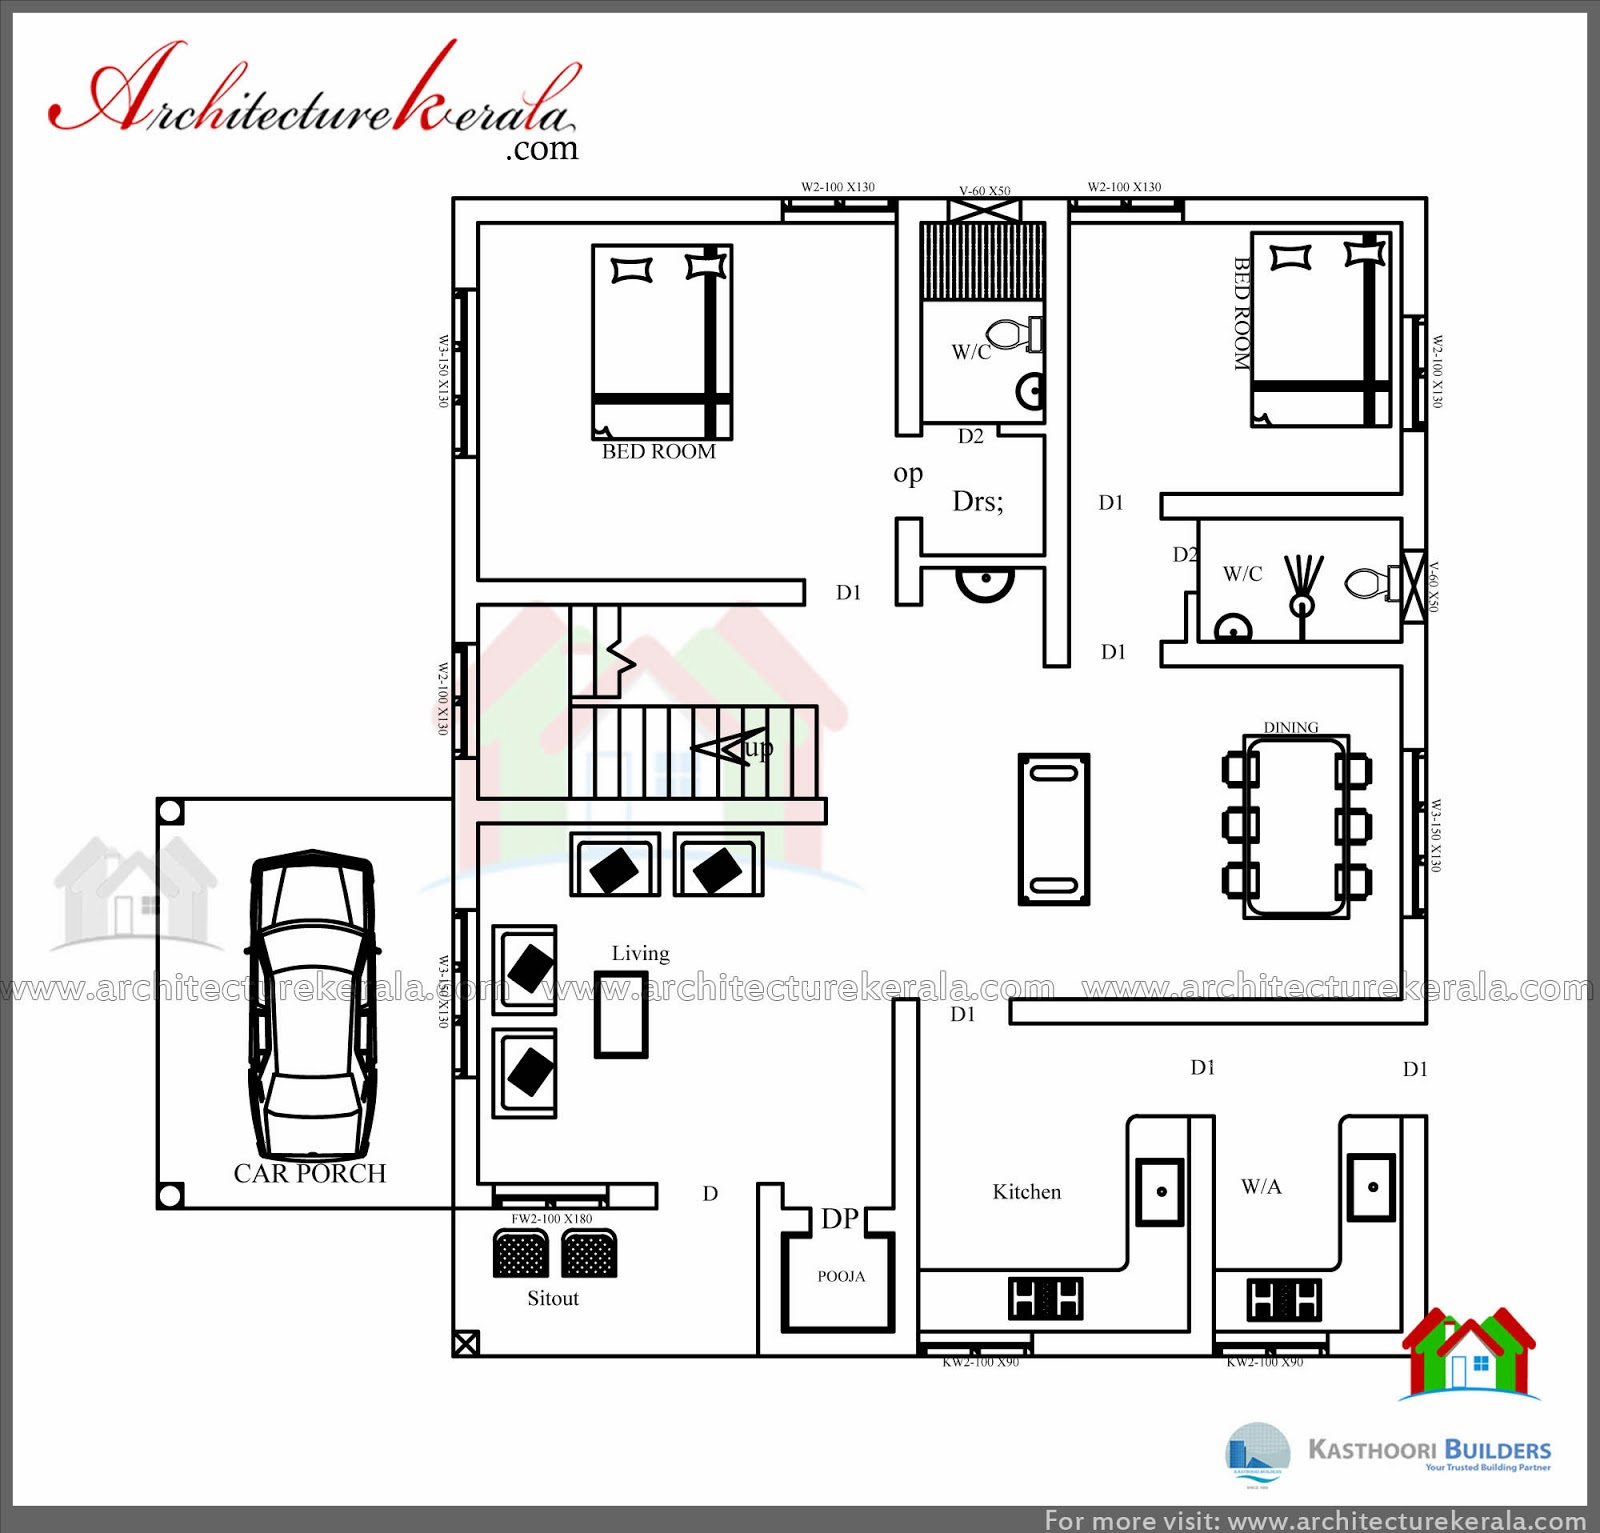 Low cost 3 bedroom kerala house plan with elevation free for 4 bedroom kerala house plans and elevations